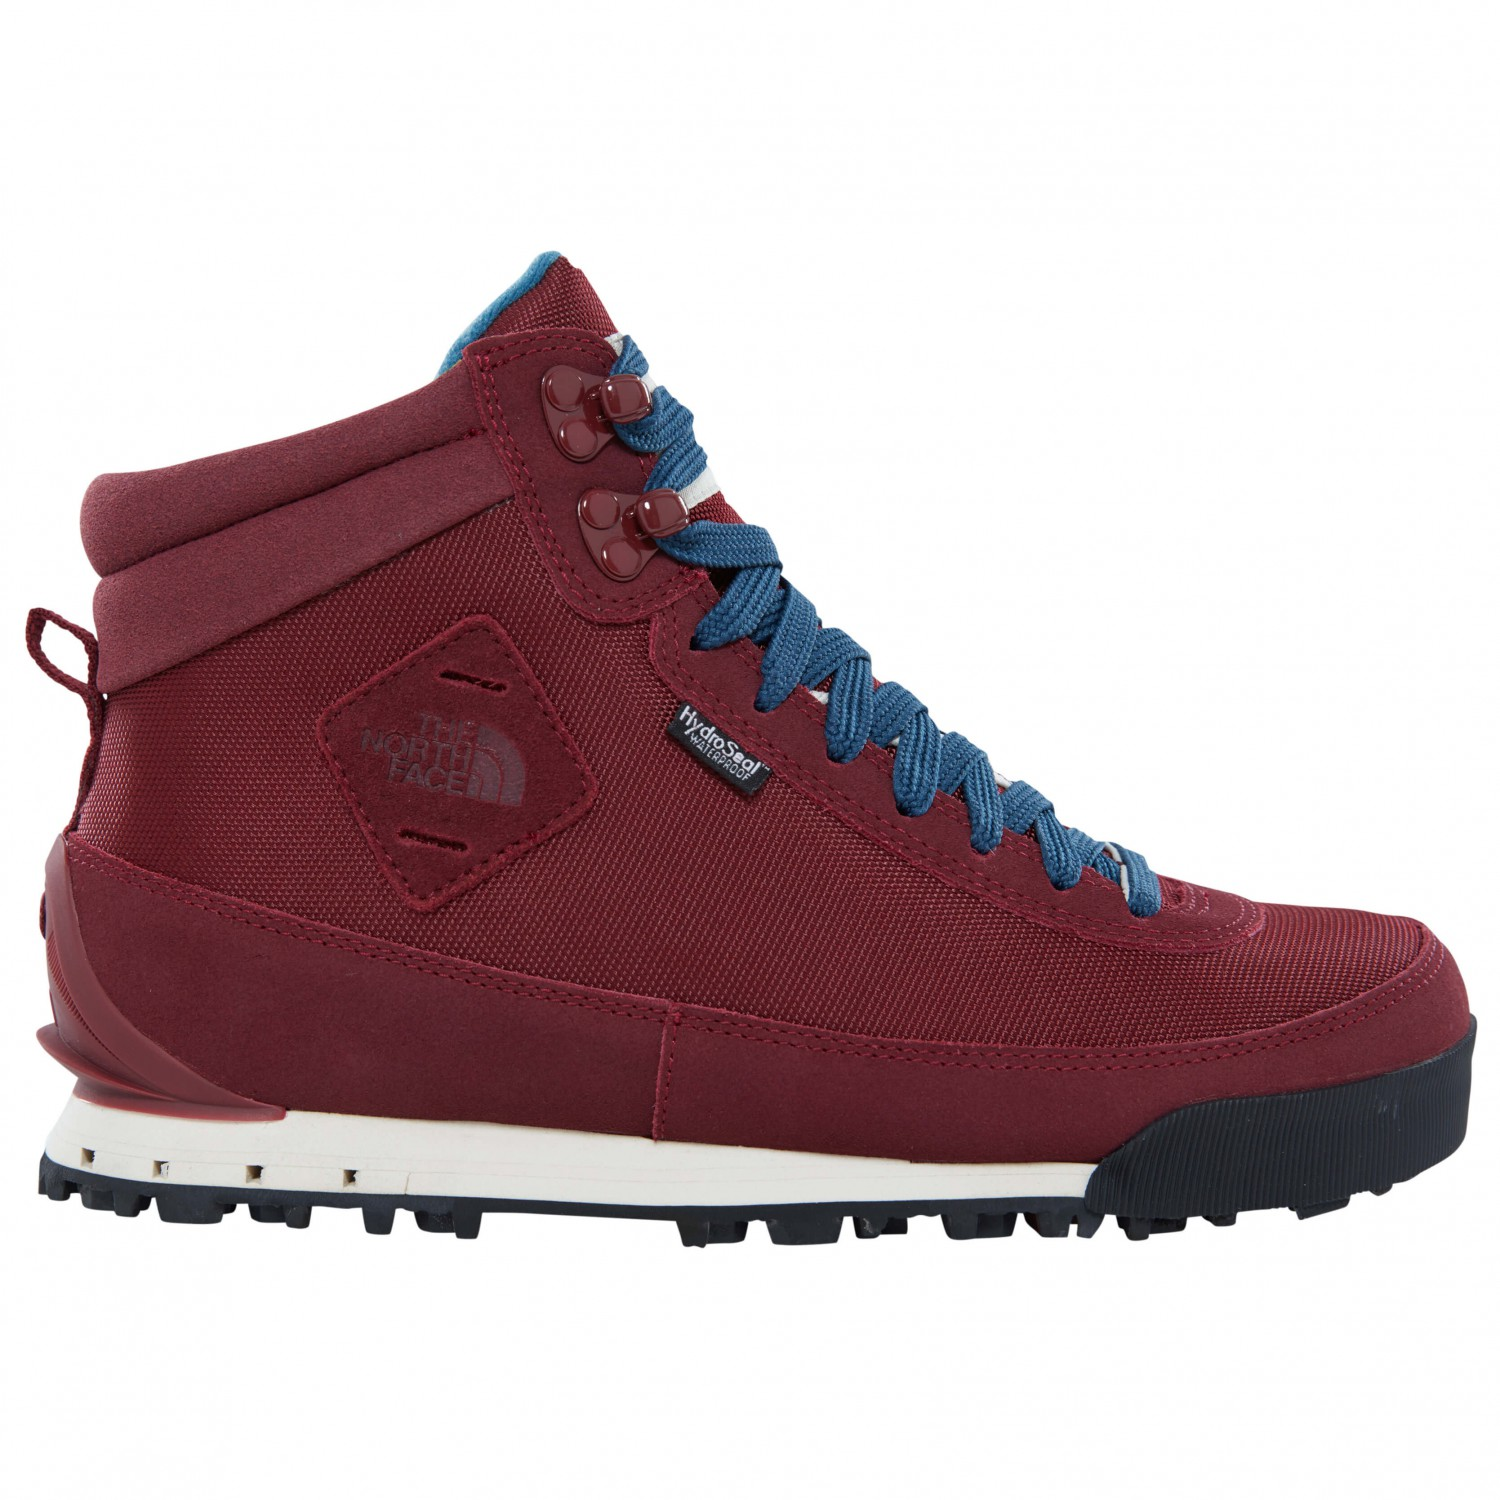 7f5f1dd5562cf The North Face Back to Berkeley Boot 2 - Bottes Femme   Livraison ...